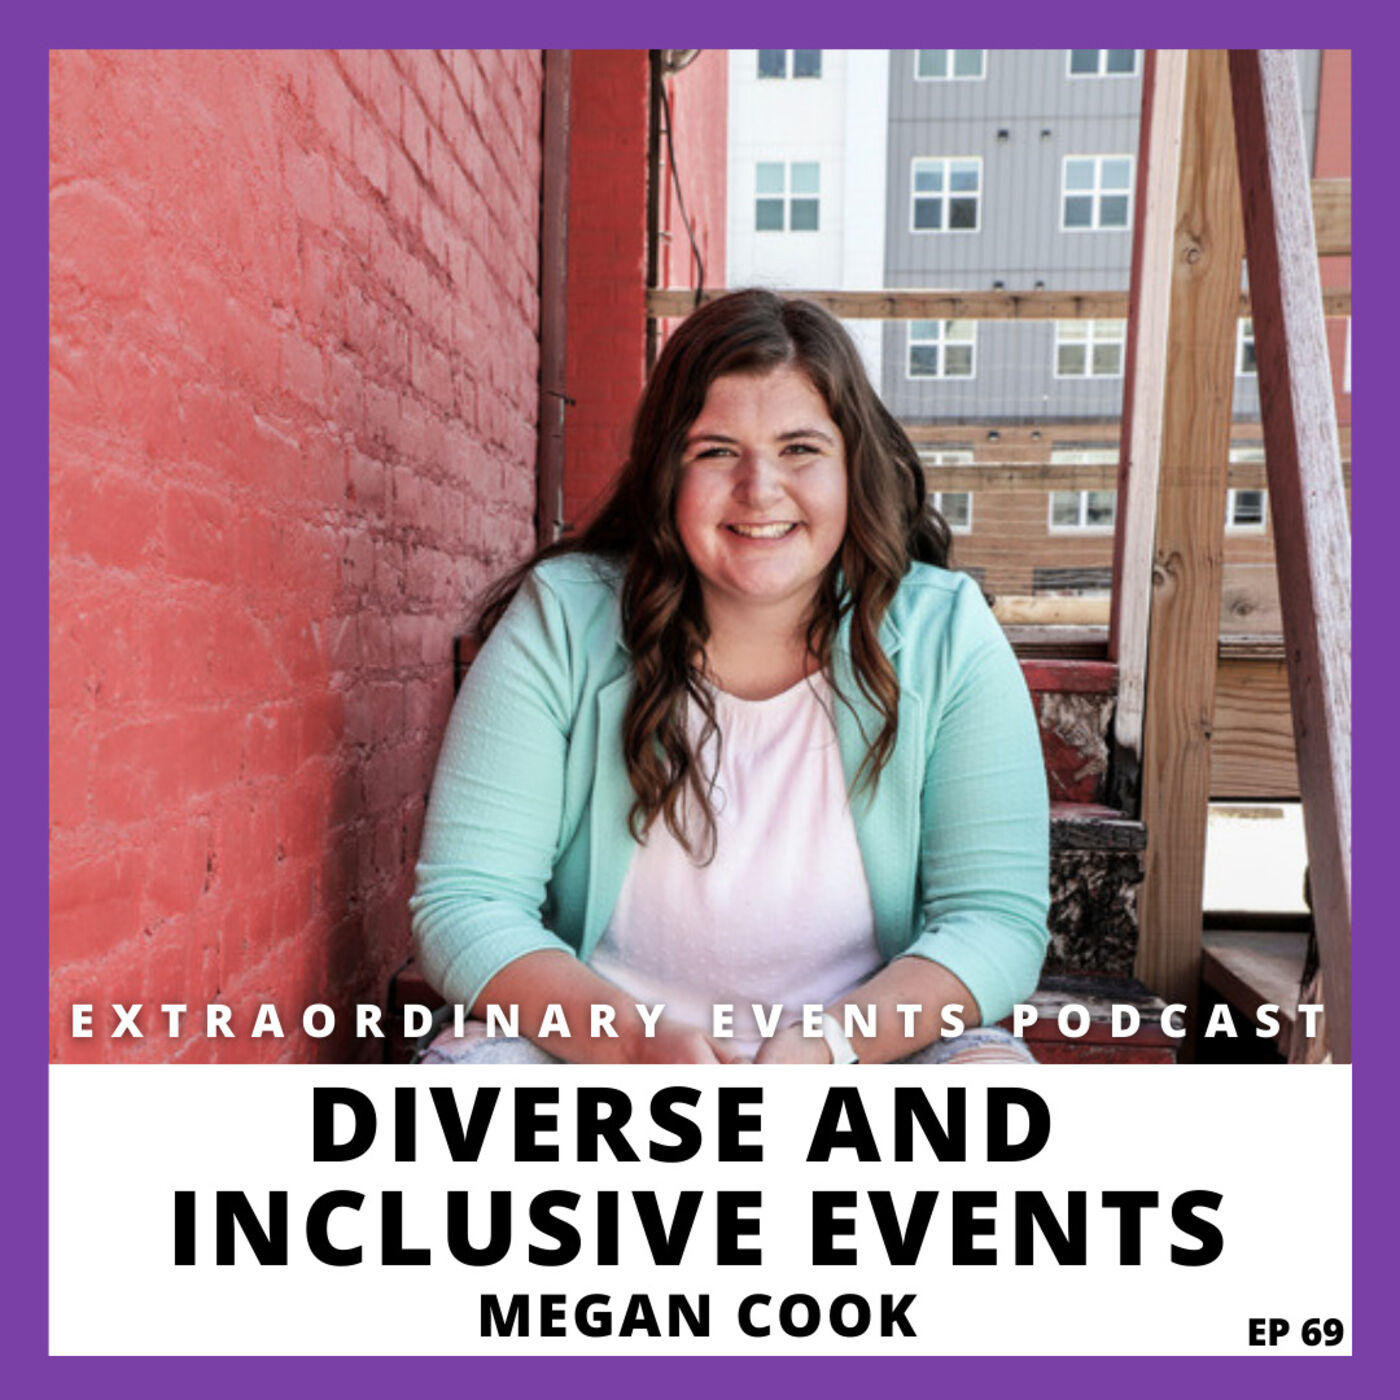 Ep 69: Diverse and Inclusive Events with Megan Cook